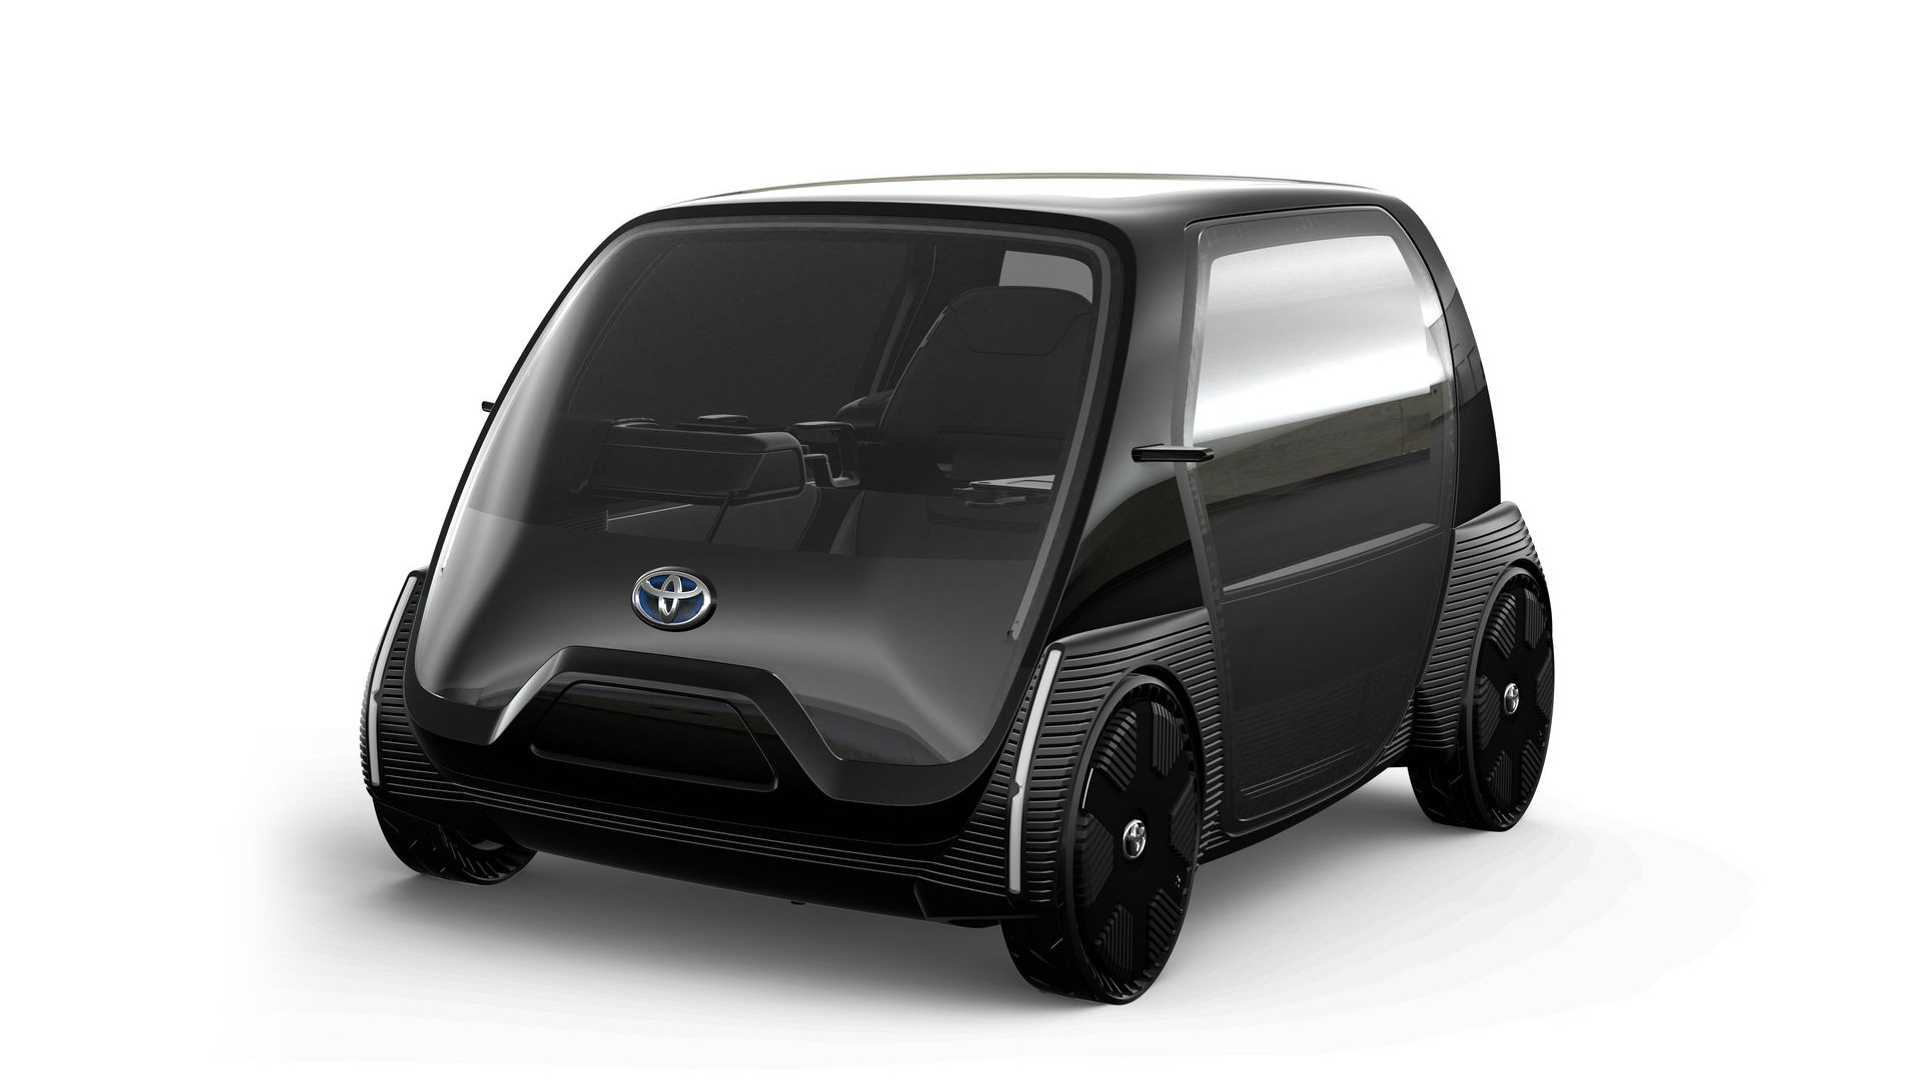 11 Concept of Toyota Bev 2020 Prices for Toyota Bev 2020